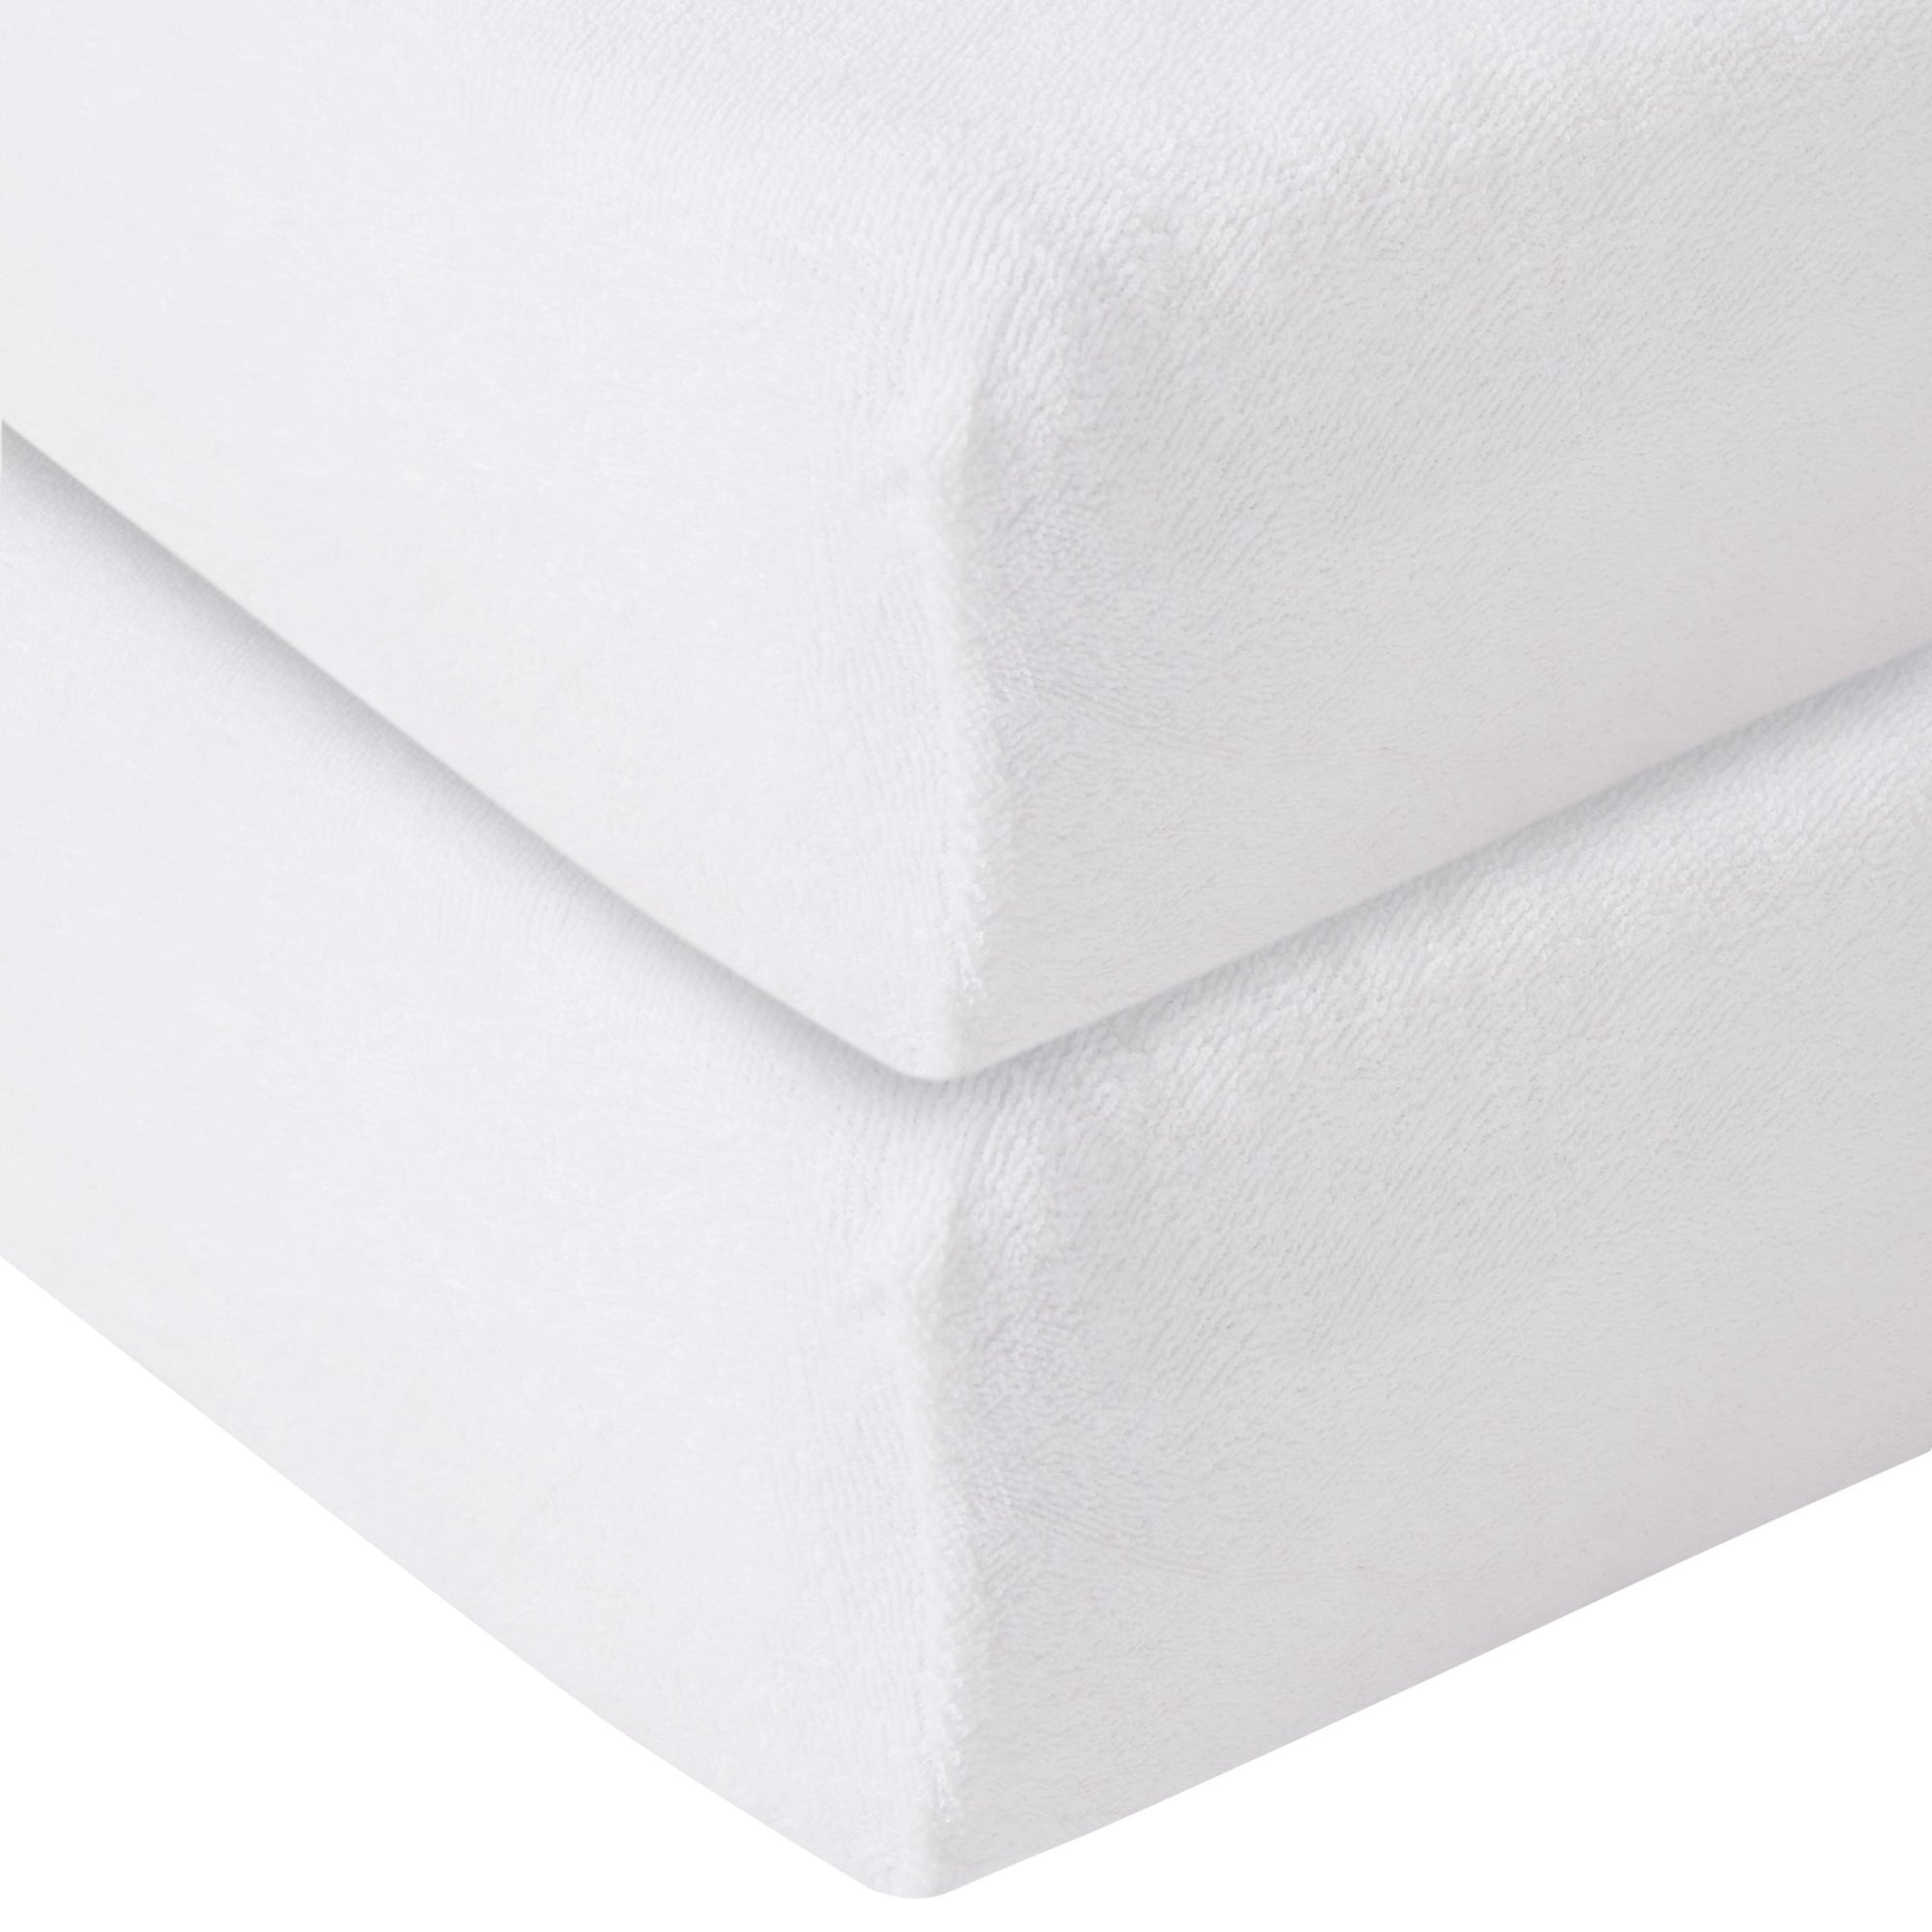 John Lewis & Partners GOTS Fitted Terry Cotbed Sheet, 70 x 140cm, Pack of 2, White